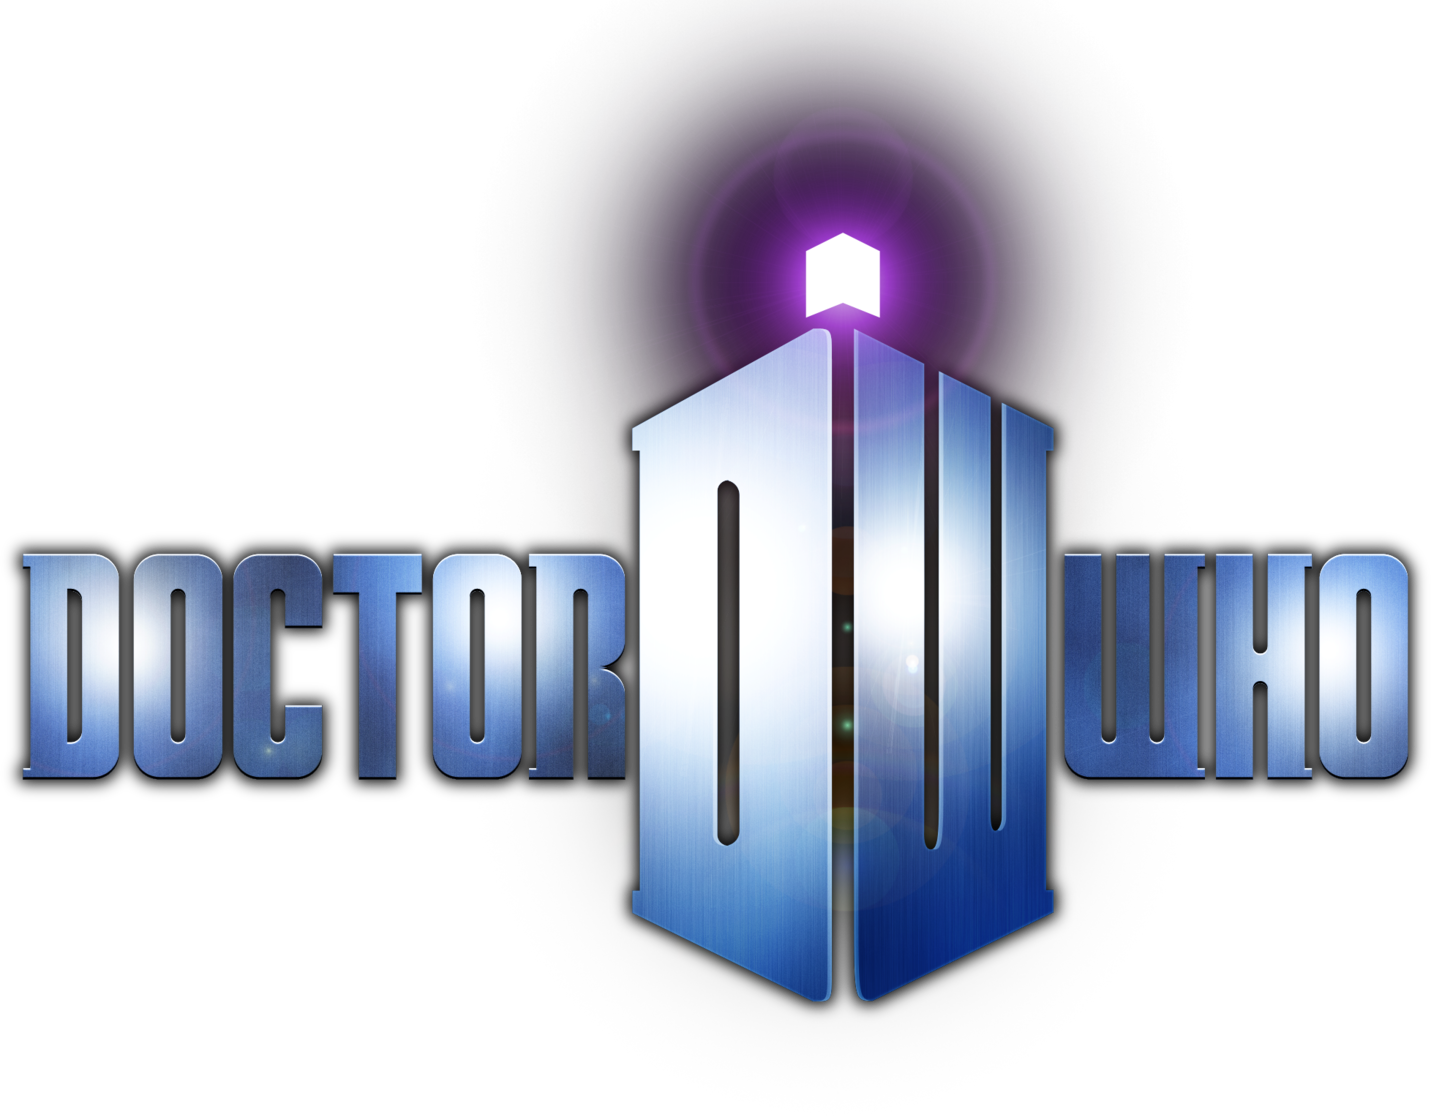 Clip Art Dr Who Clipart tardis clip art all doctor who logos free cliparts that you can download to you